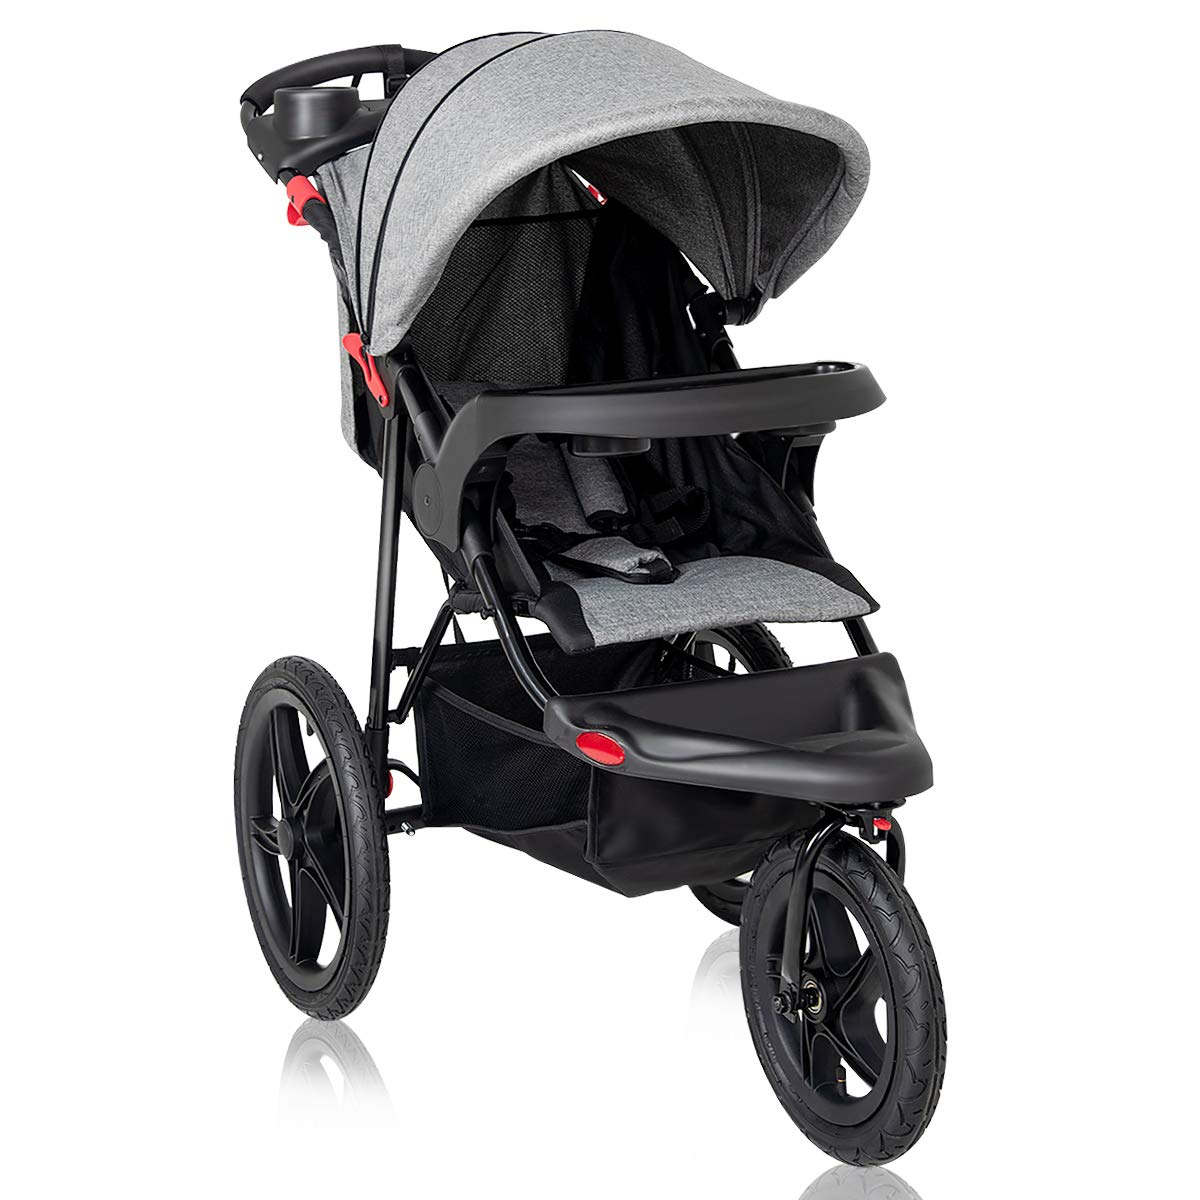 Costzon Baby Jogger Stroller, All Terrain Lightweight Fitness Jogging Stroller w/Parental Cup Phone Holder, Free Tractive Webbing, Large Storage Basket (Gray)